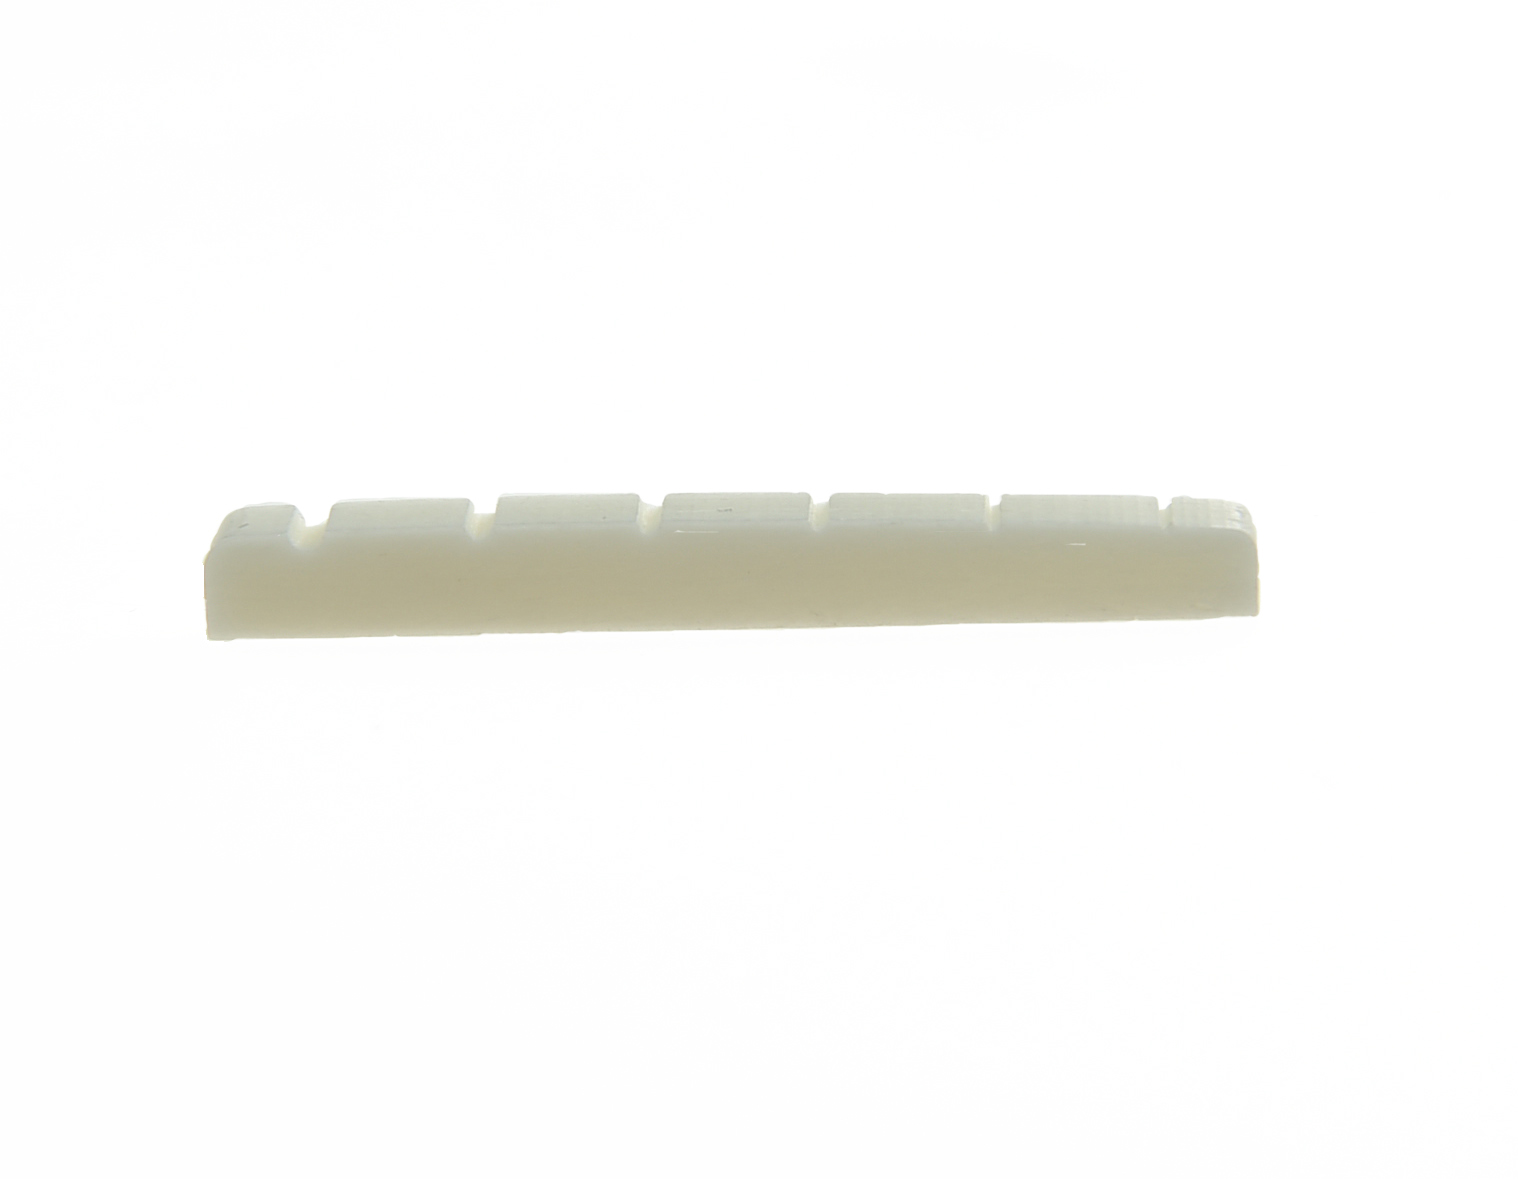 KAISH 42mm Pure Bone Nut Electric Guitar Slotted Bone Nut for ST  42x3.5mm